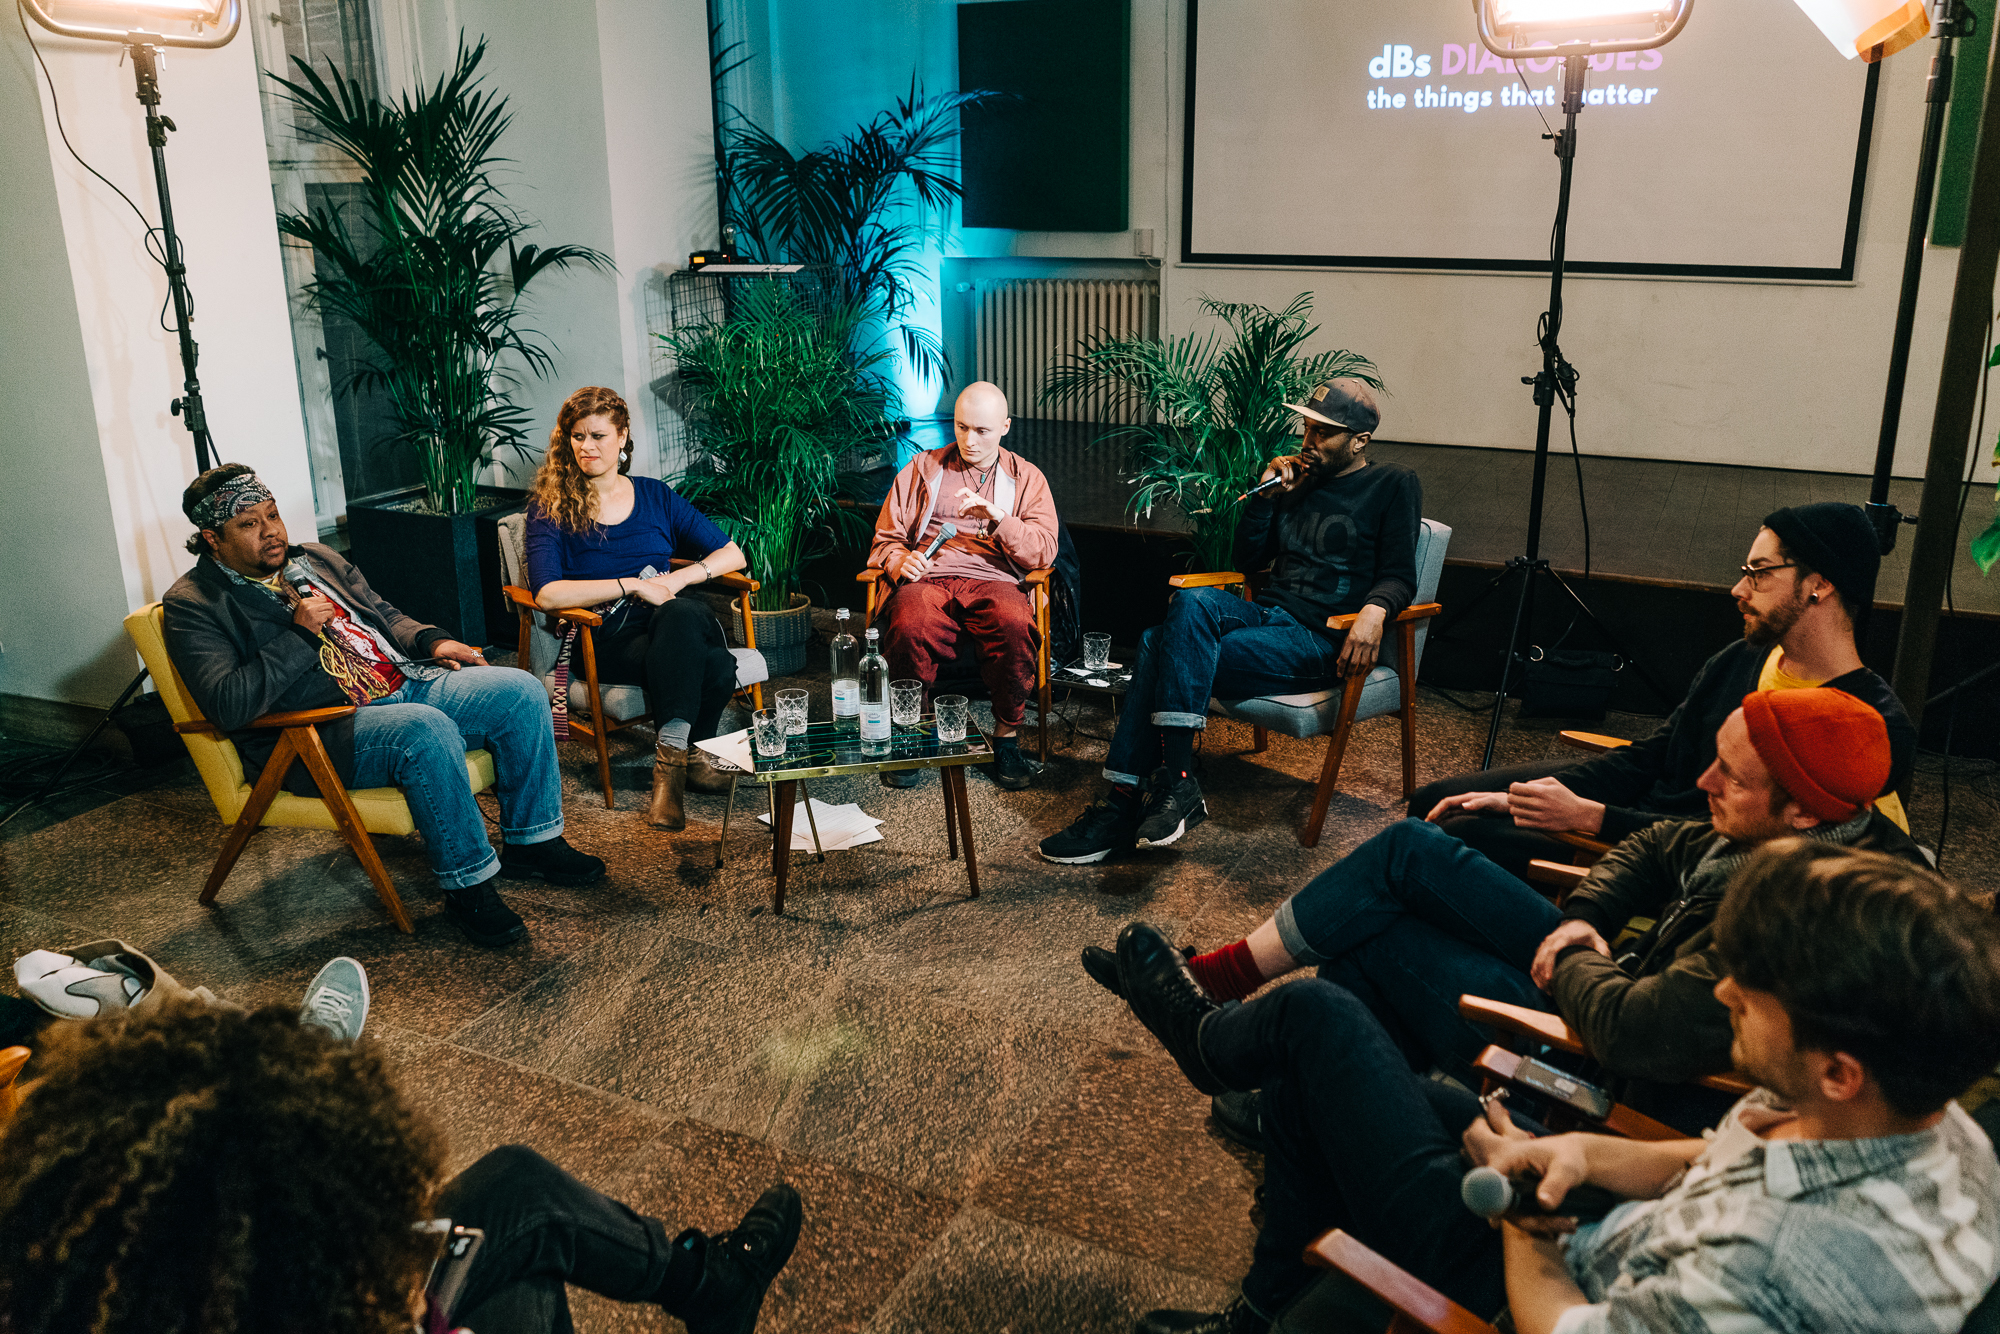 Can You Copyright Culture? 5 Things We Learnt at dBs Dialogues